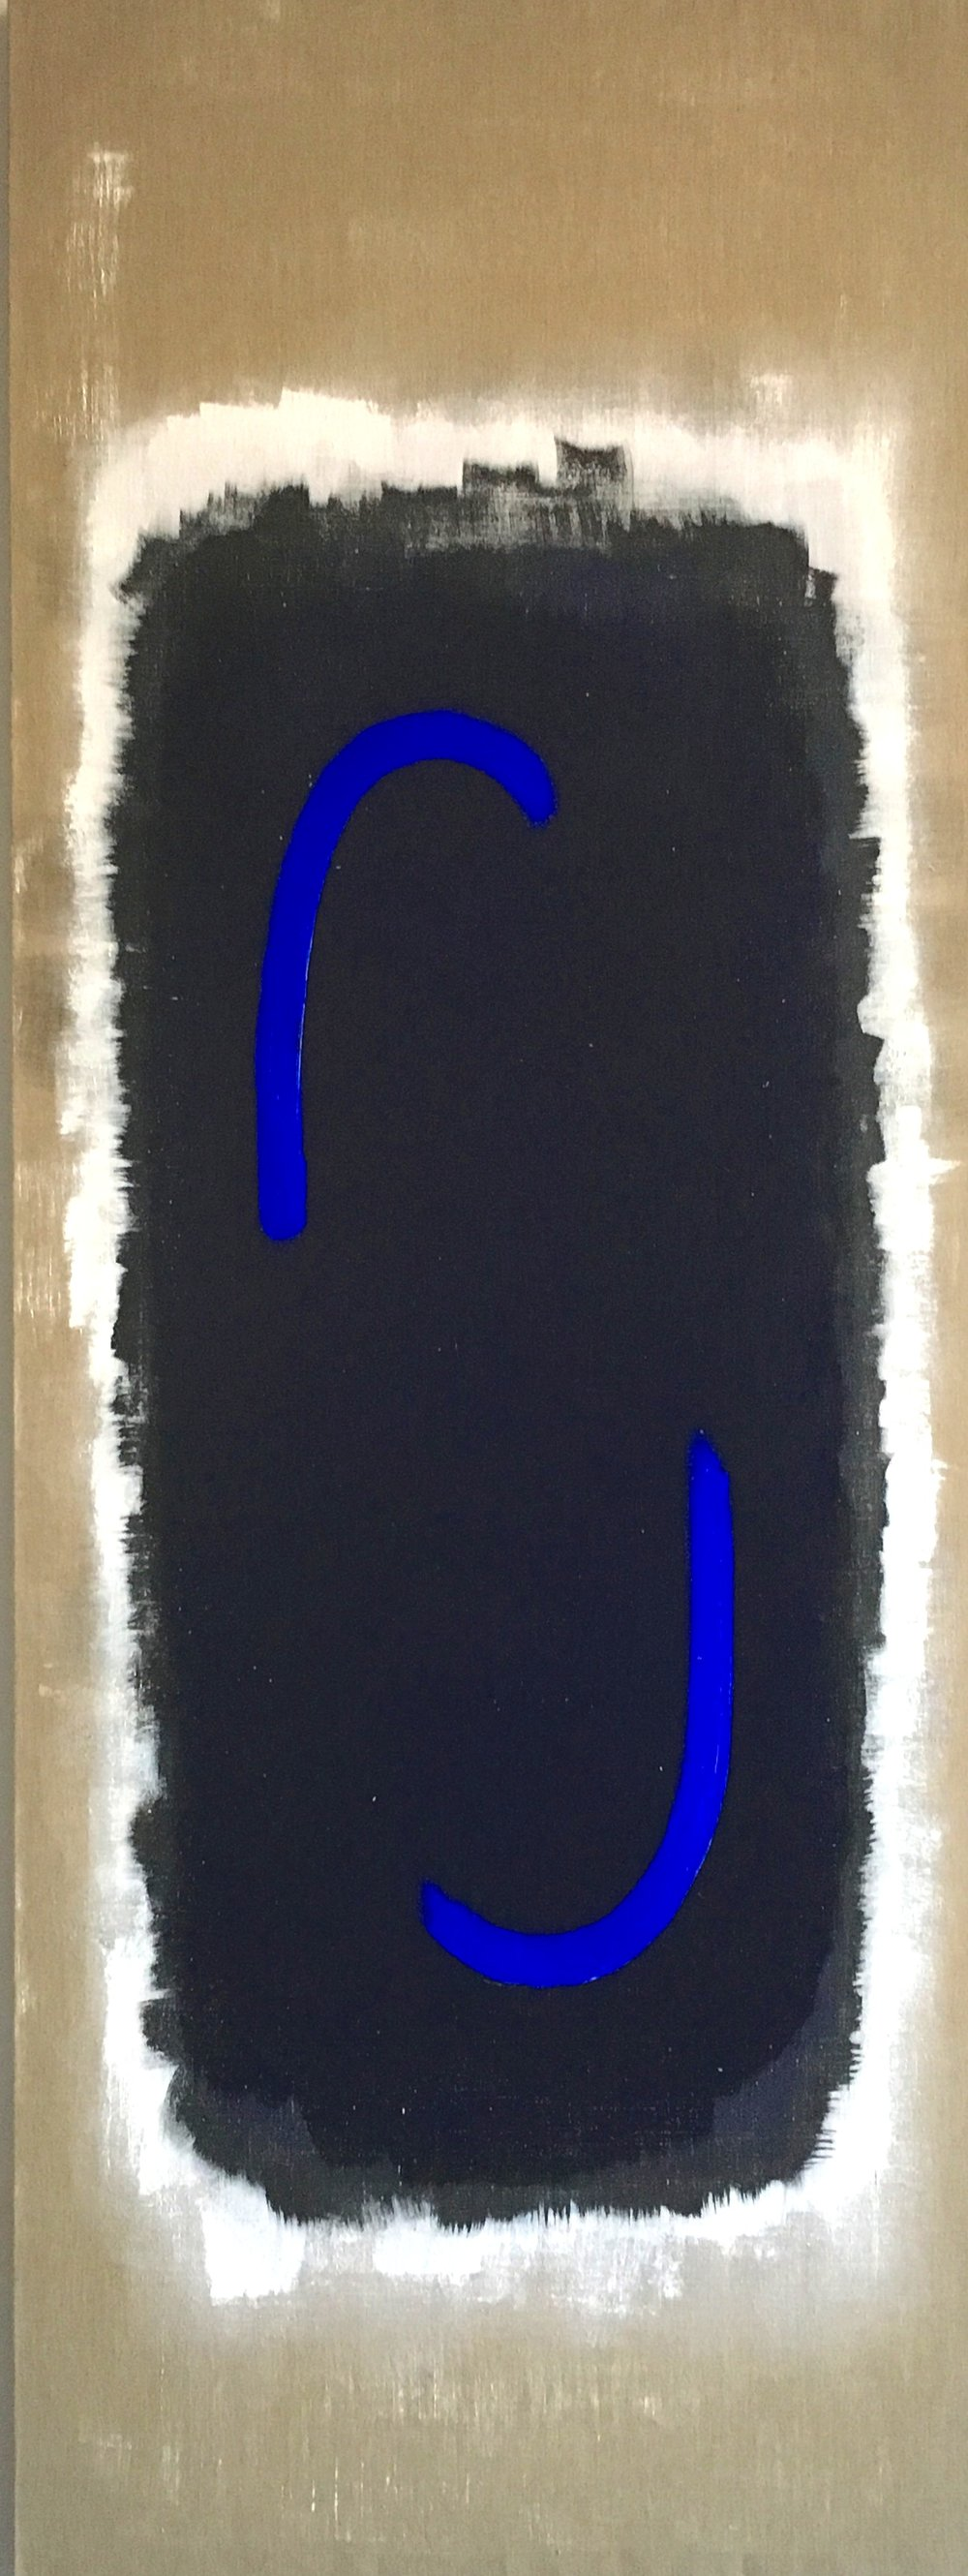 Blessed Virgin Mary, 2017, 80 x 30 inches